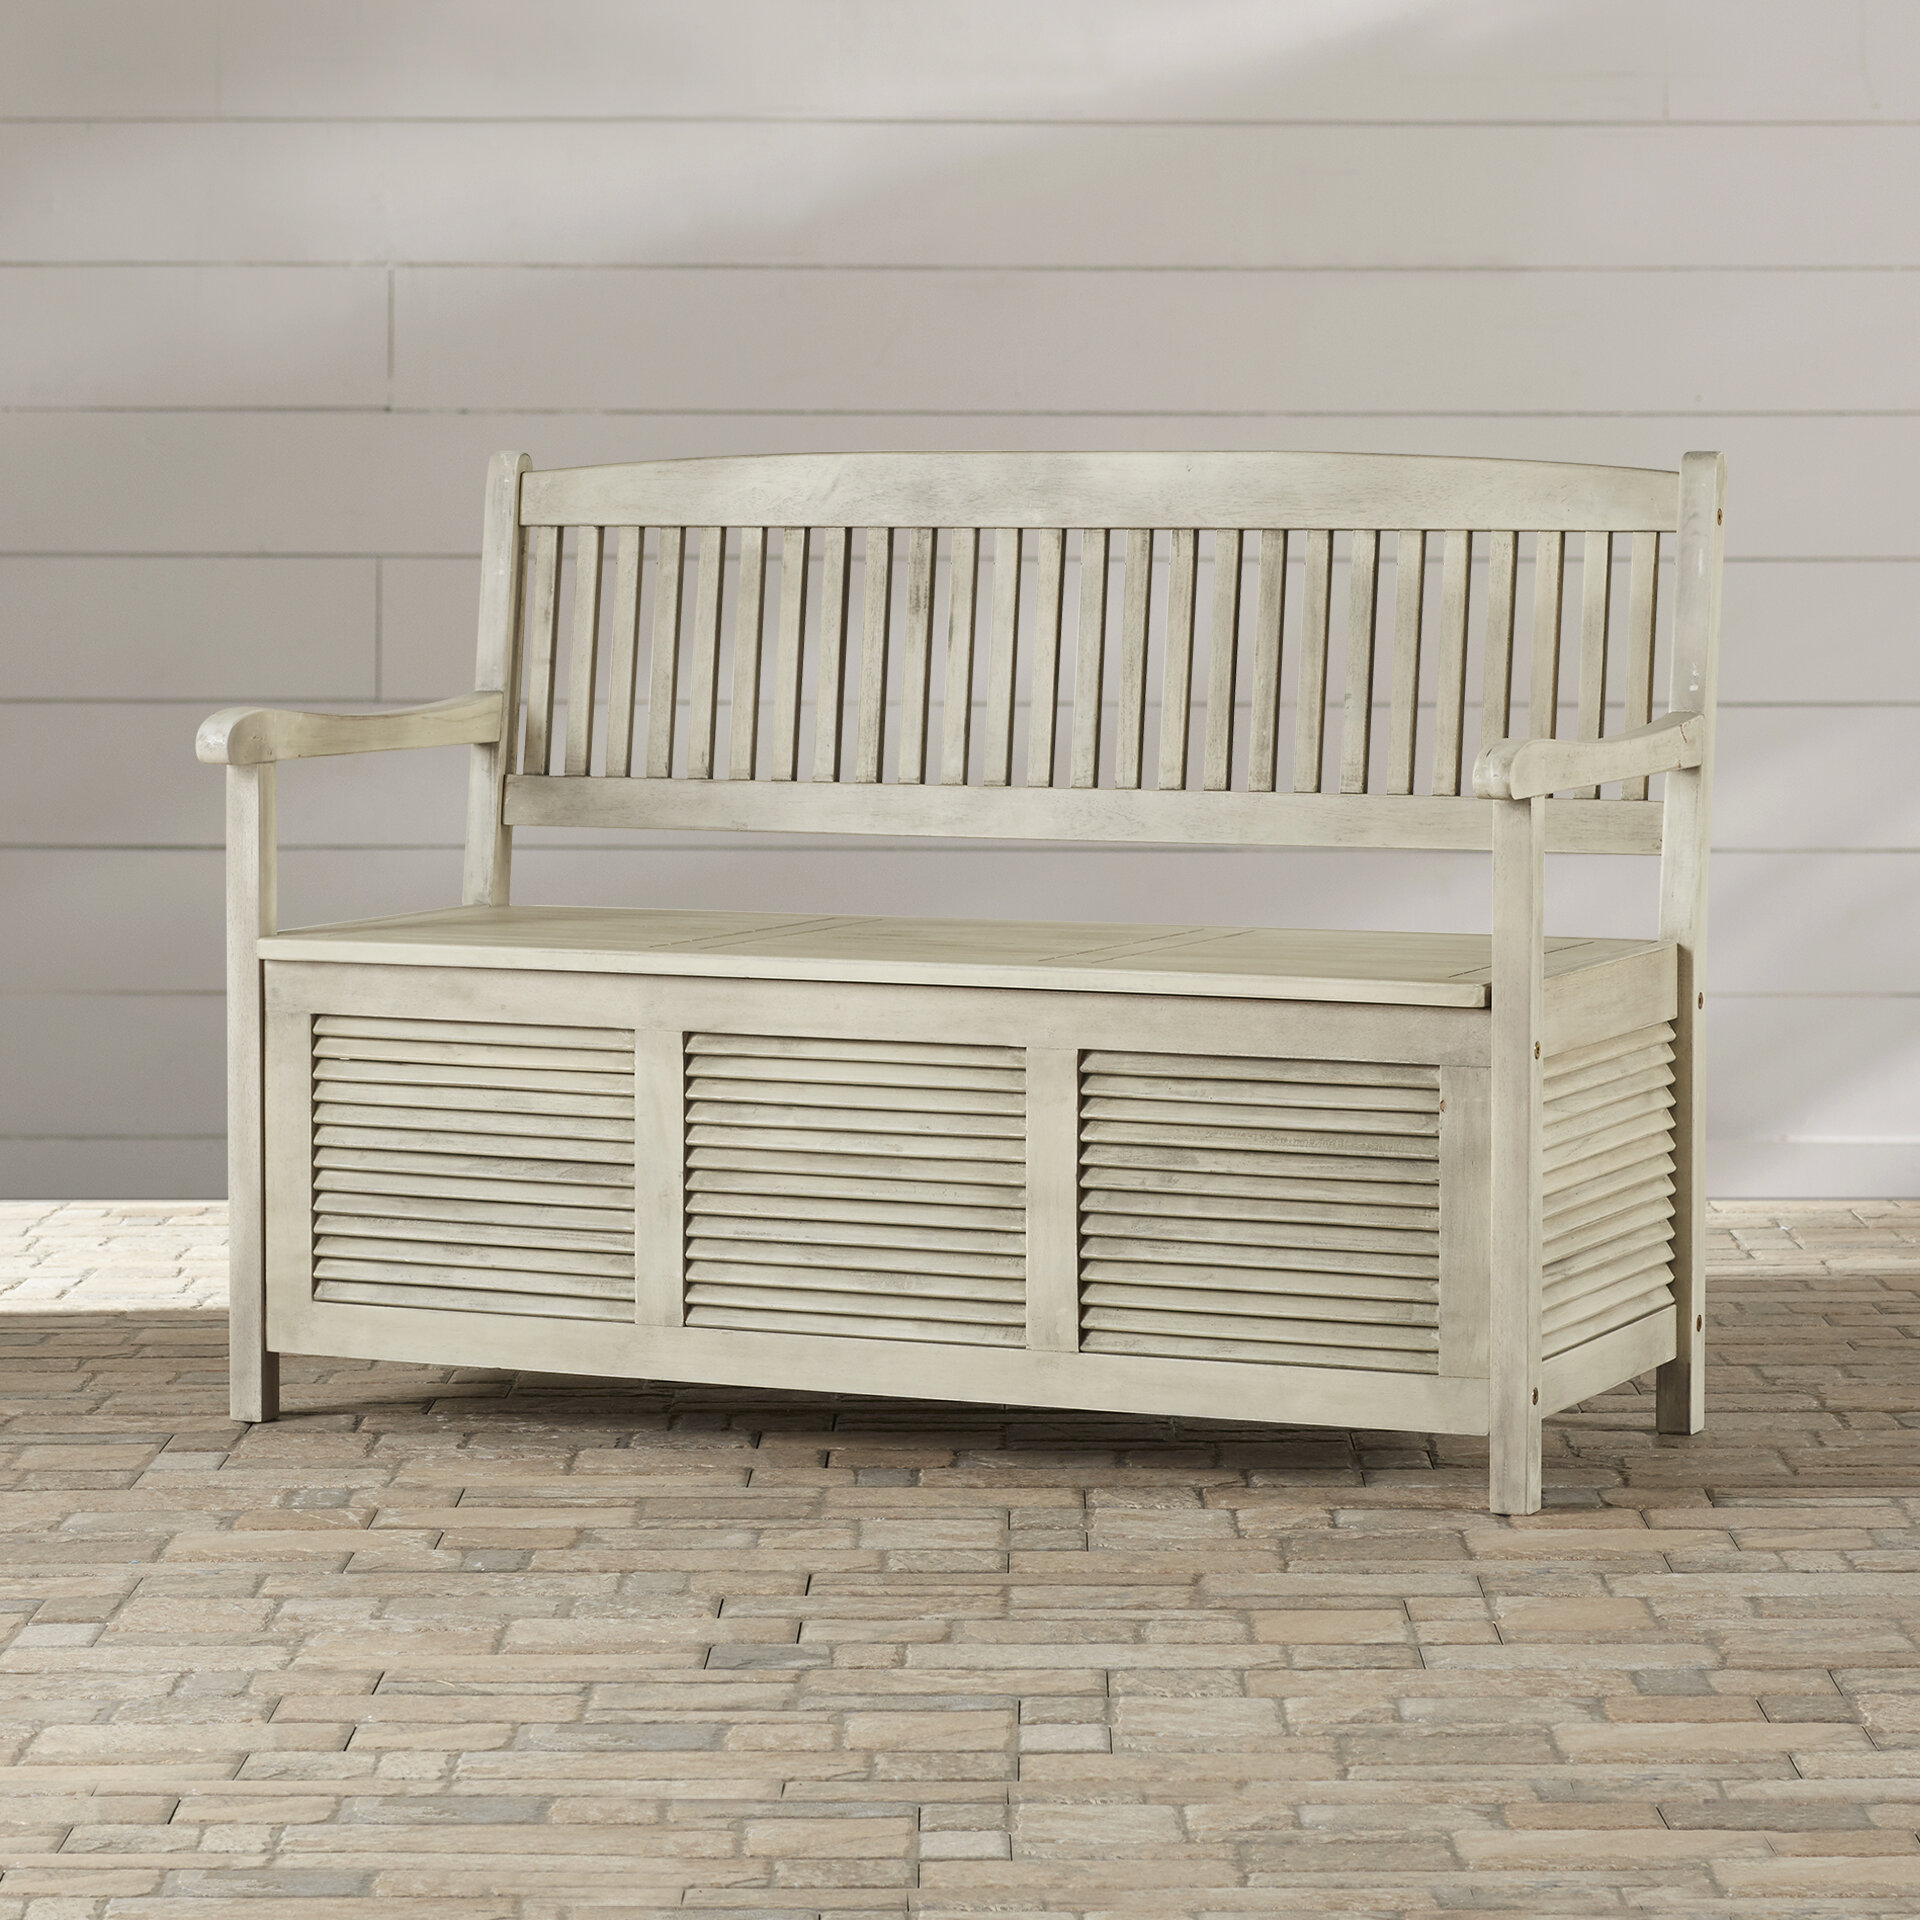 Prime Brisbane Wooden Storage Bench Caraccident5 Cool Chair Designs And Ideas Caraccident5Info